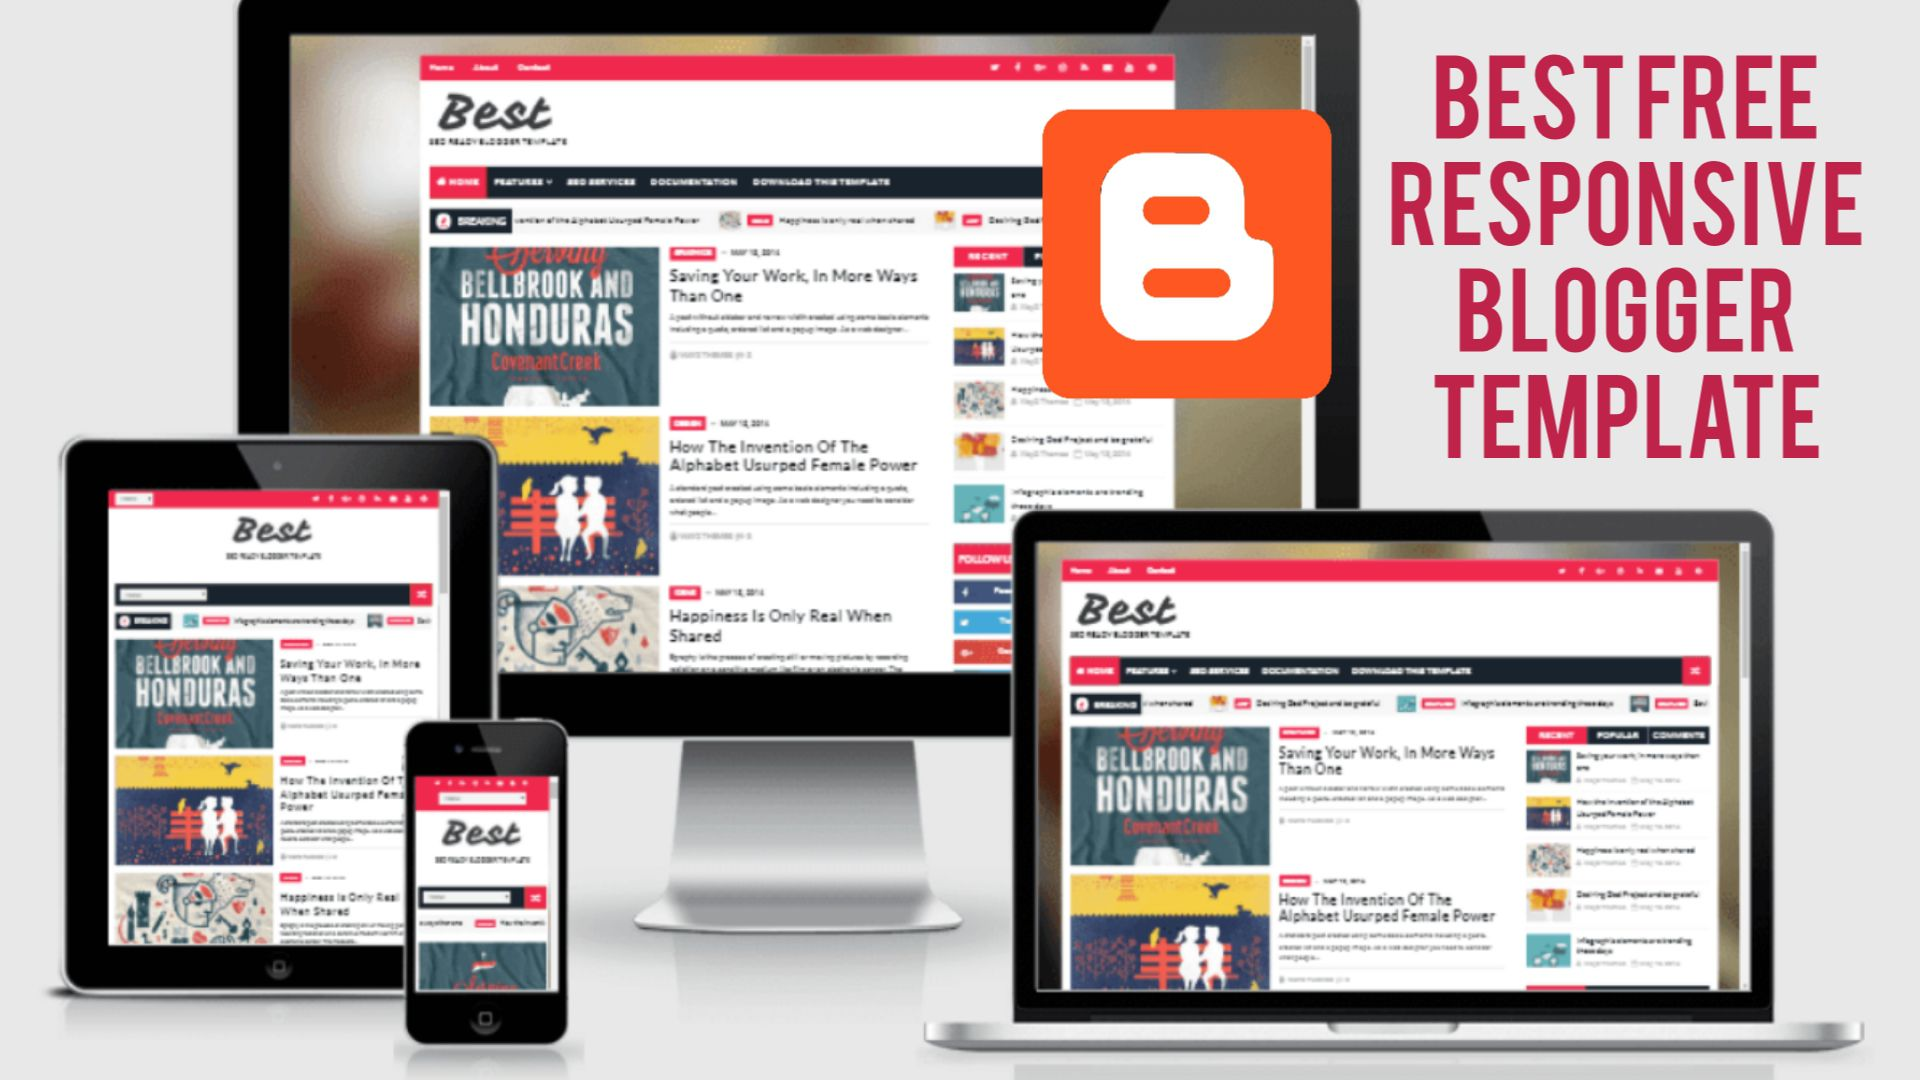 007 Stunning Best Free Blogger Template Image  Templates Responsive 2019 2020Full